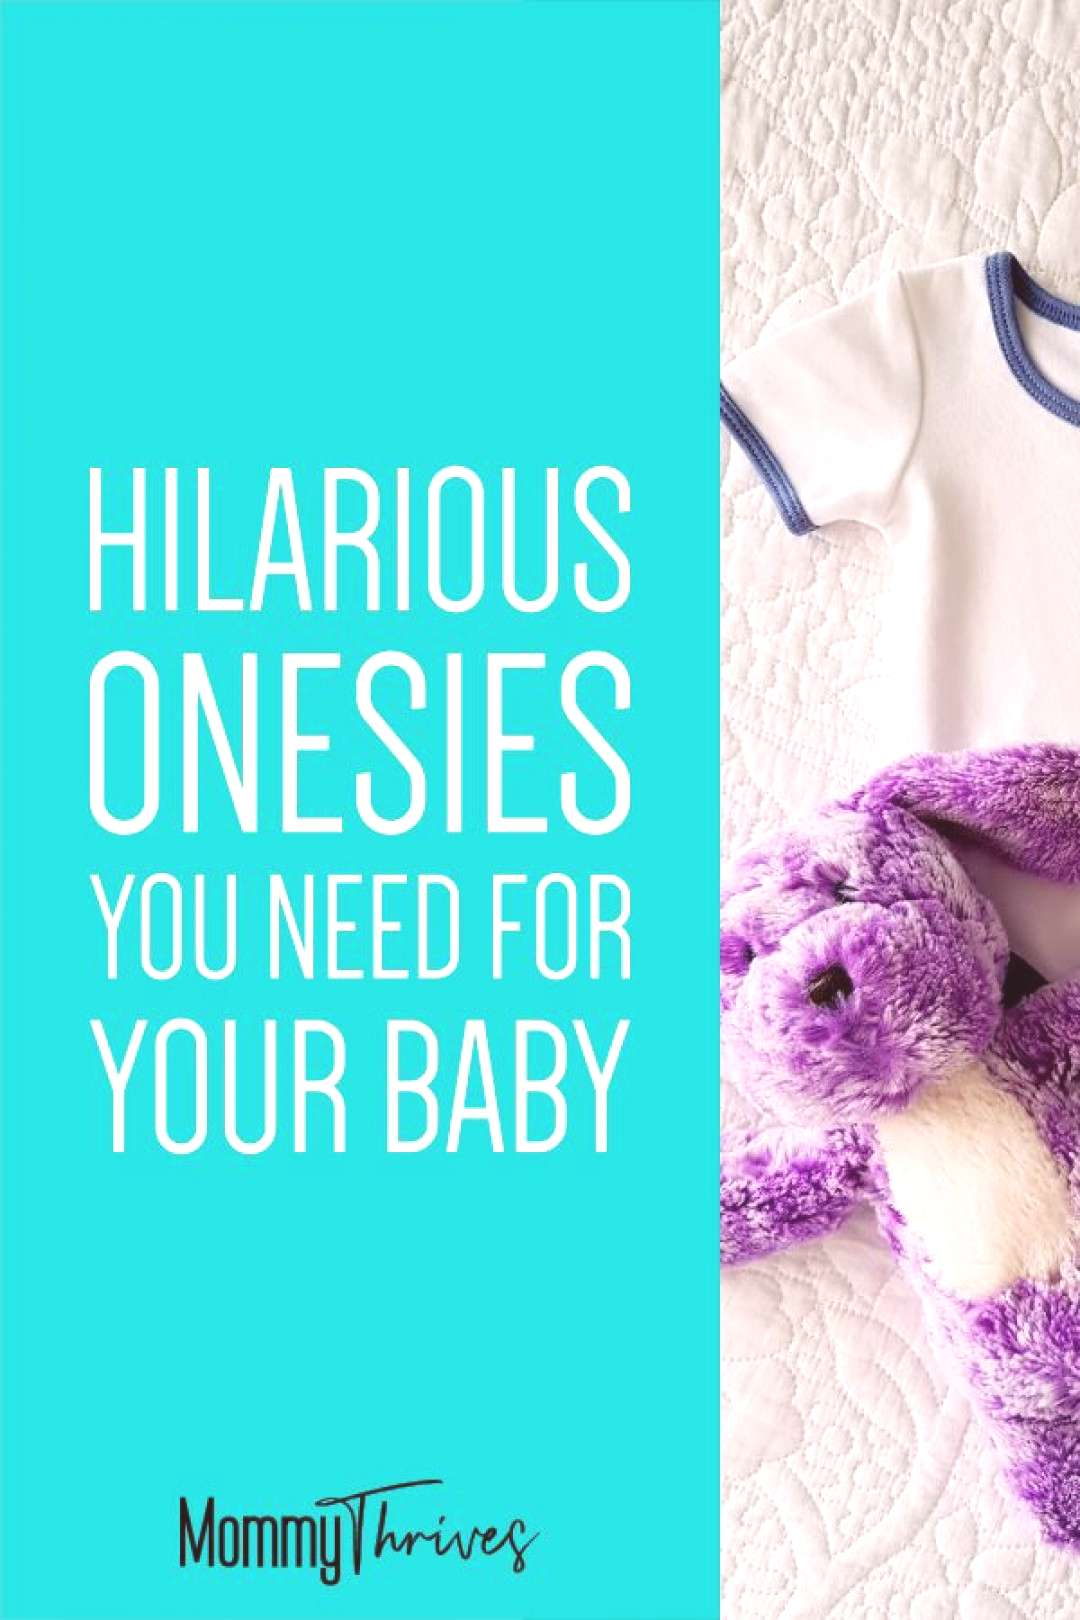 Funny amp Geeky Onesies for your Baby - Mommy Thrives Nerdy Baby Clothing That Will Delight Geek Pare